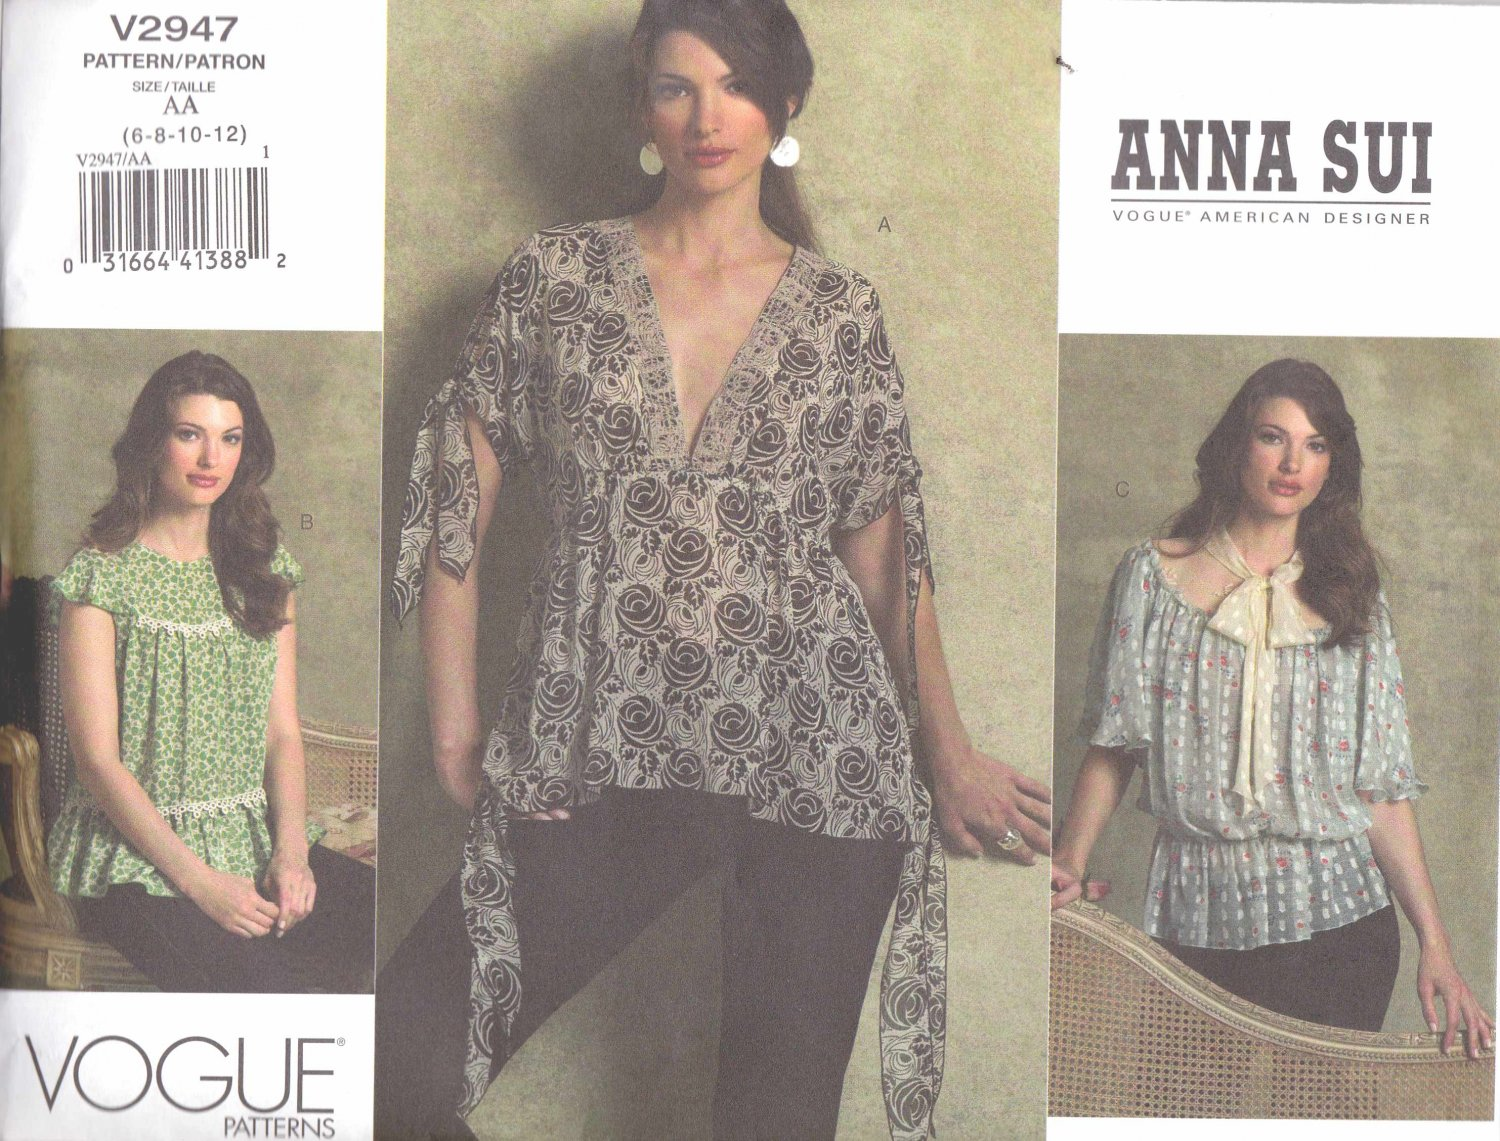 Vogue Sewing Pattern 2947 Misses Size 6-12 Anna Sui Loose Fitting Raised Waist Baby Doll Blouses